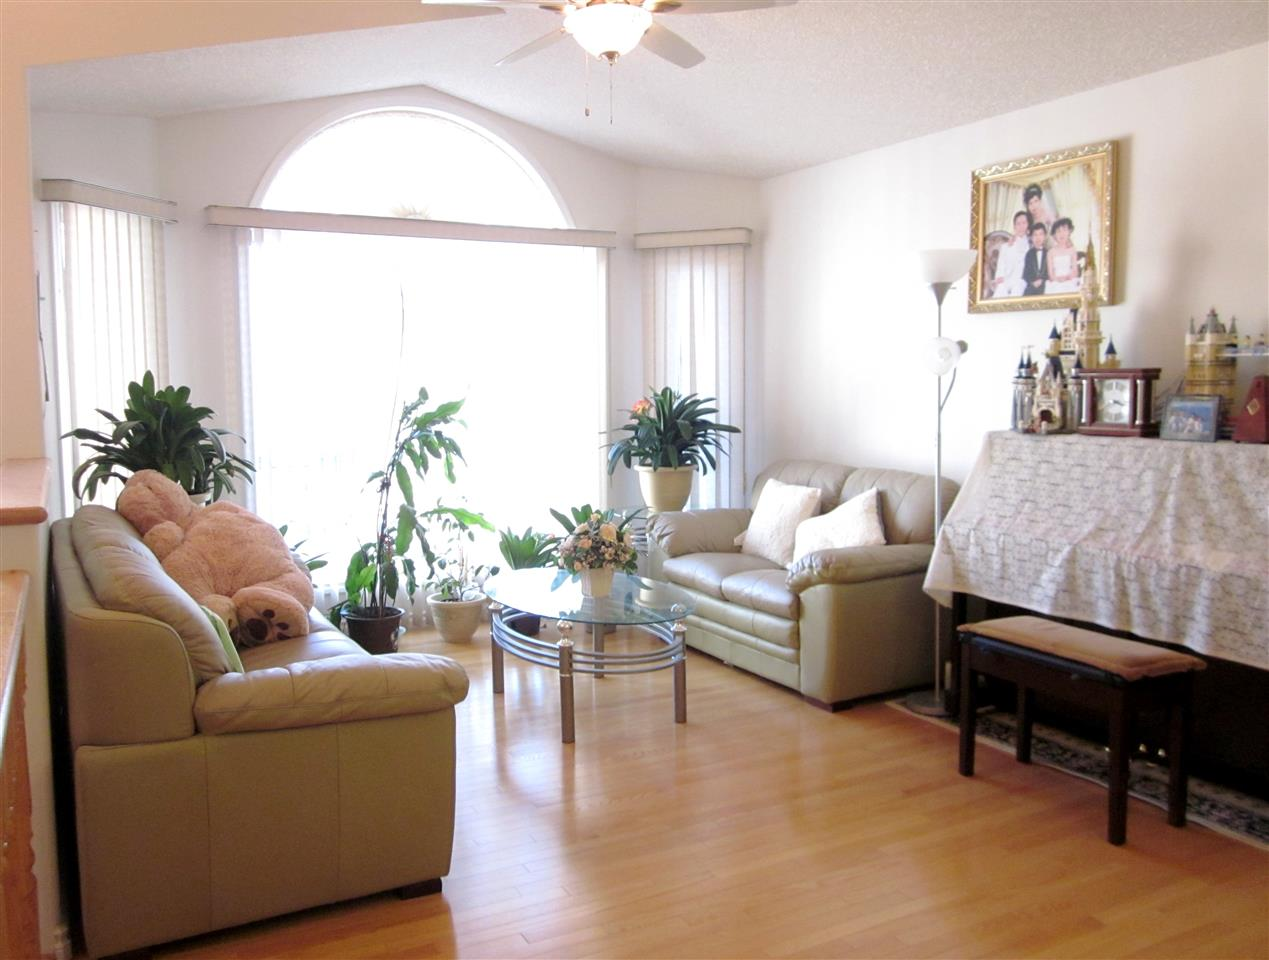 Bright living room with bay window and gleaming hardwood flooring.